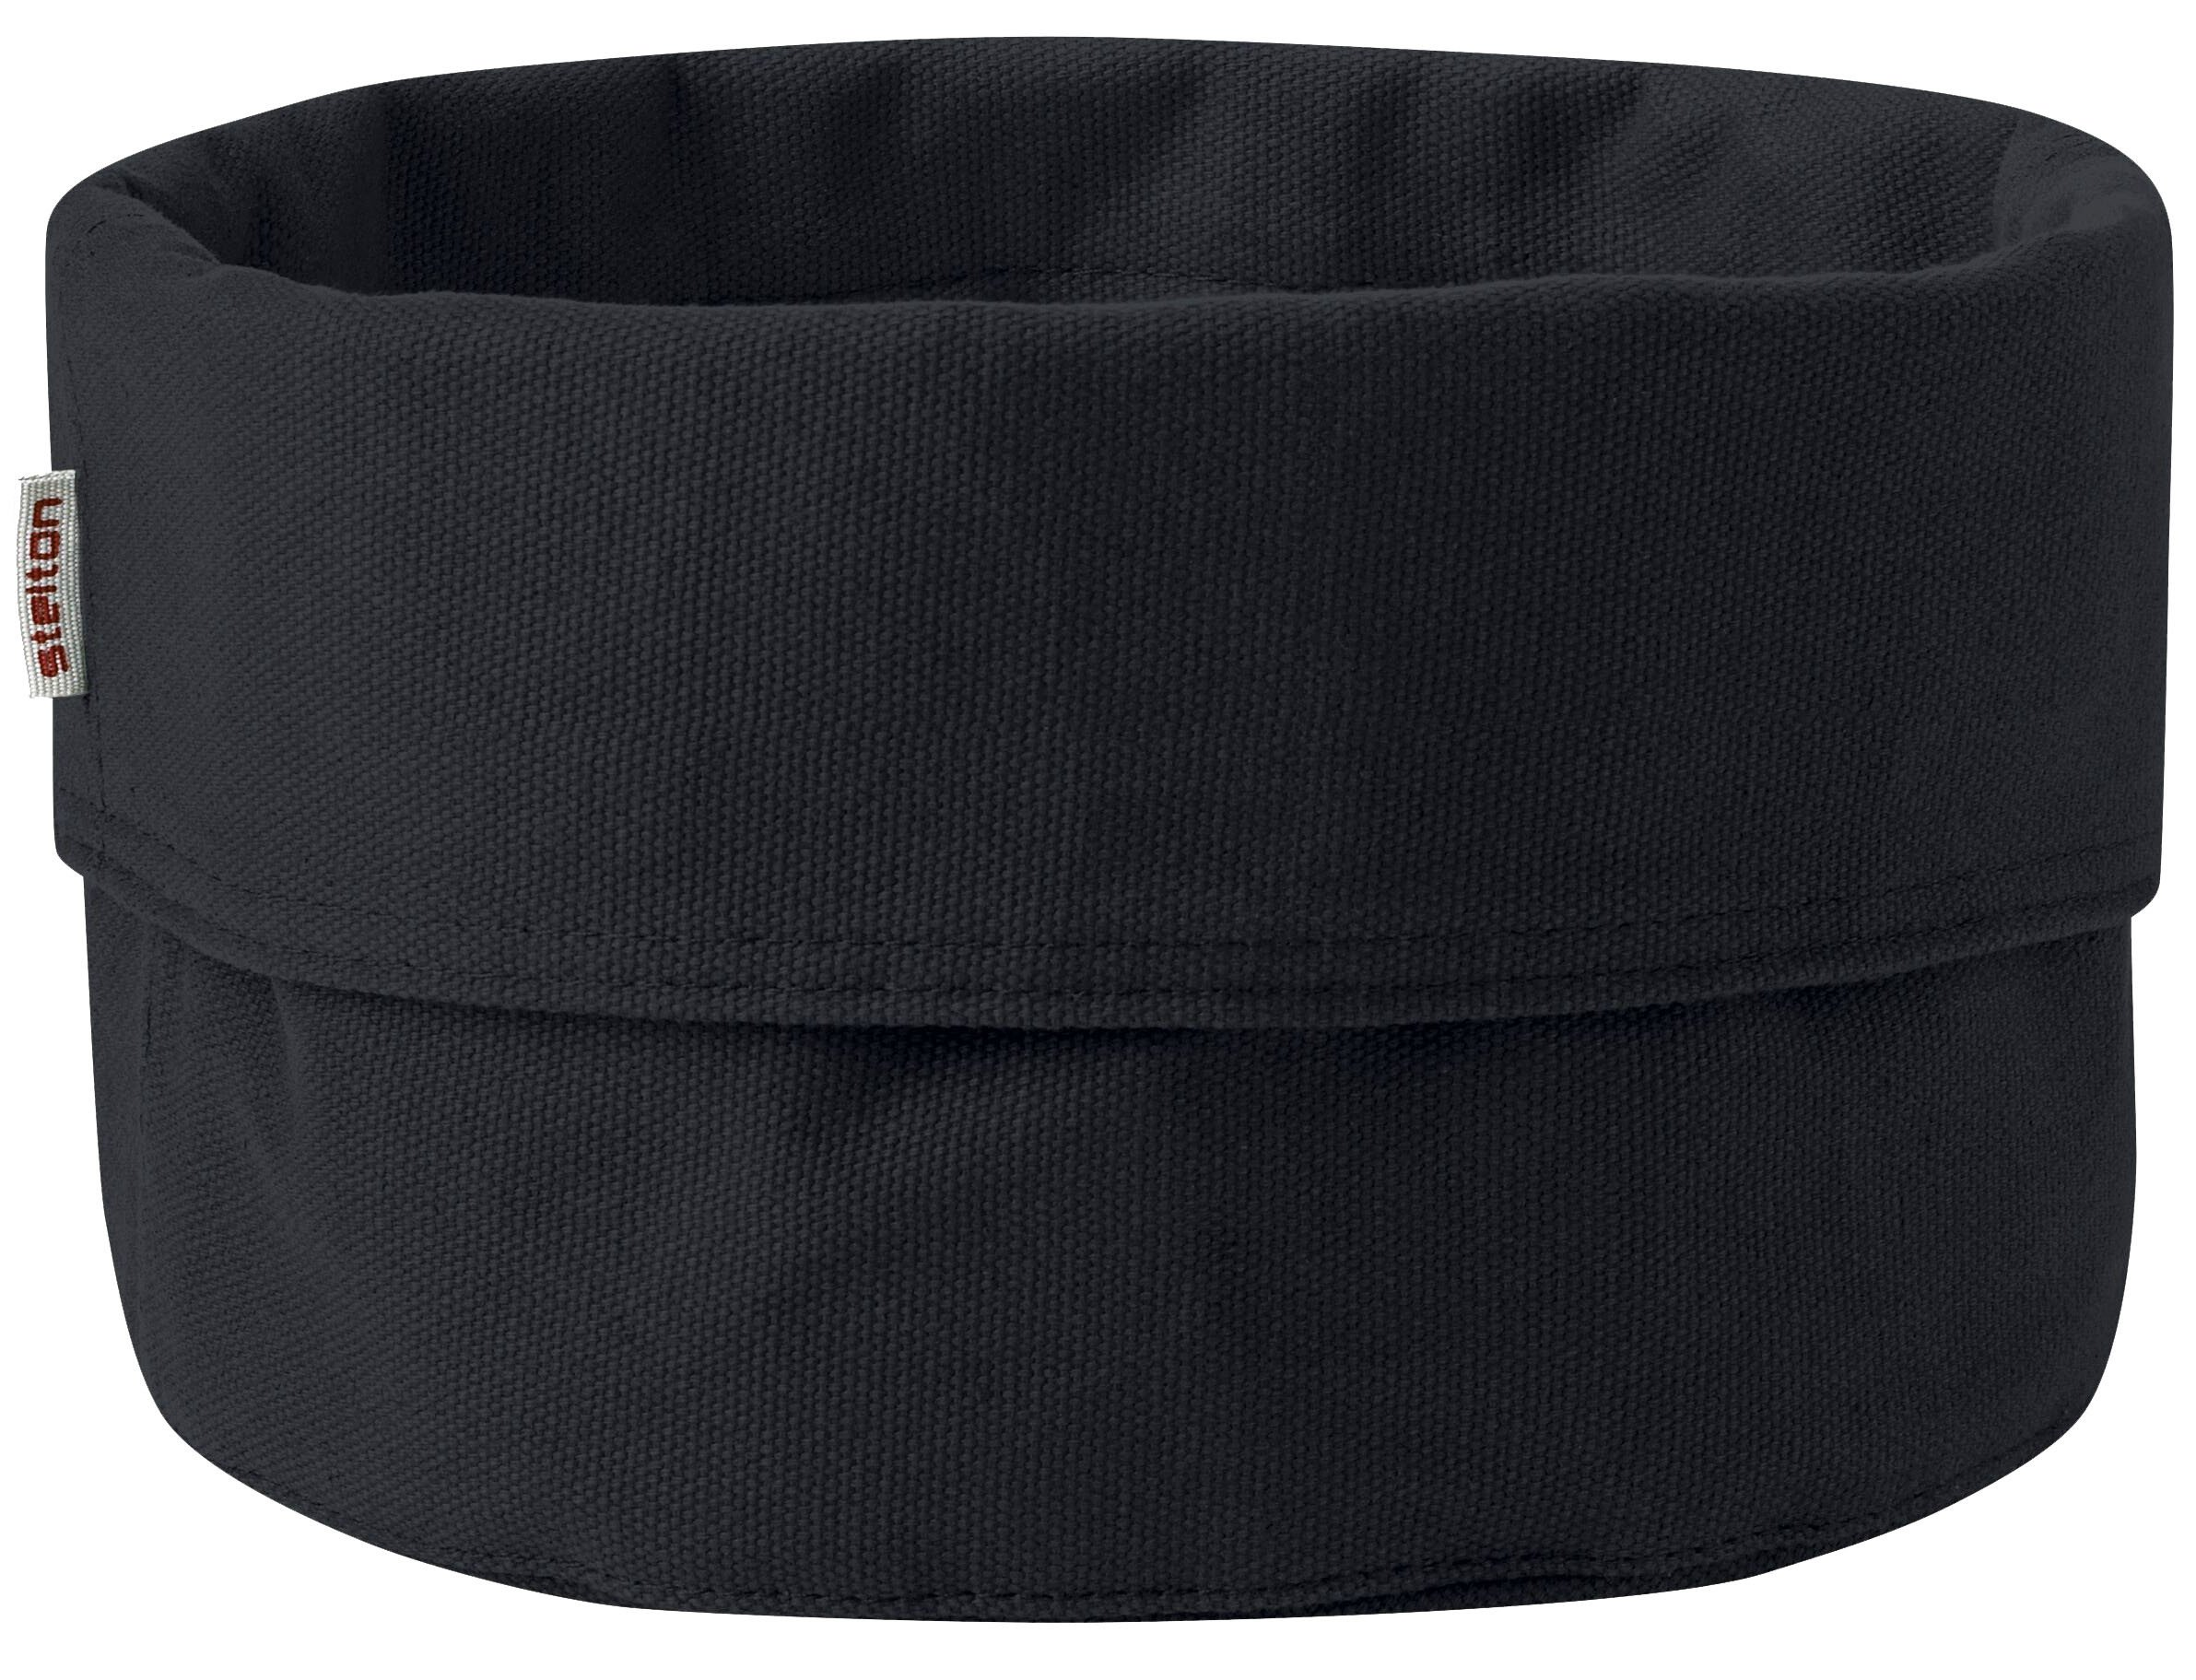 Bread Bag Black by K. Rath for Stelton